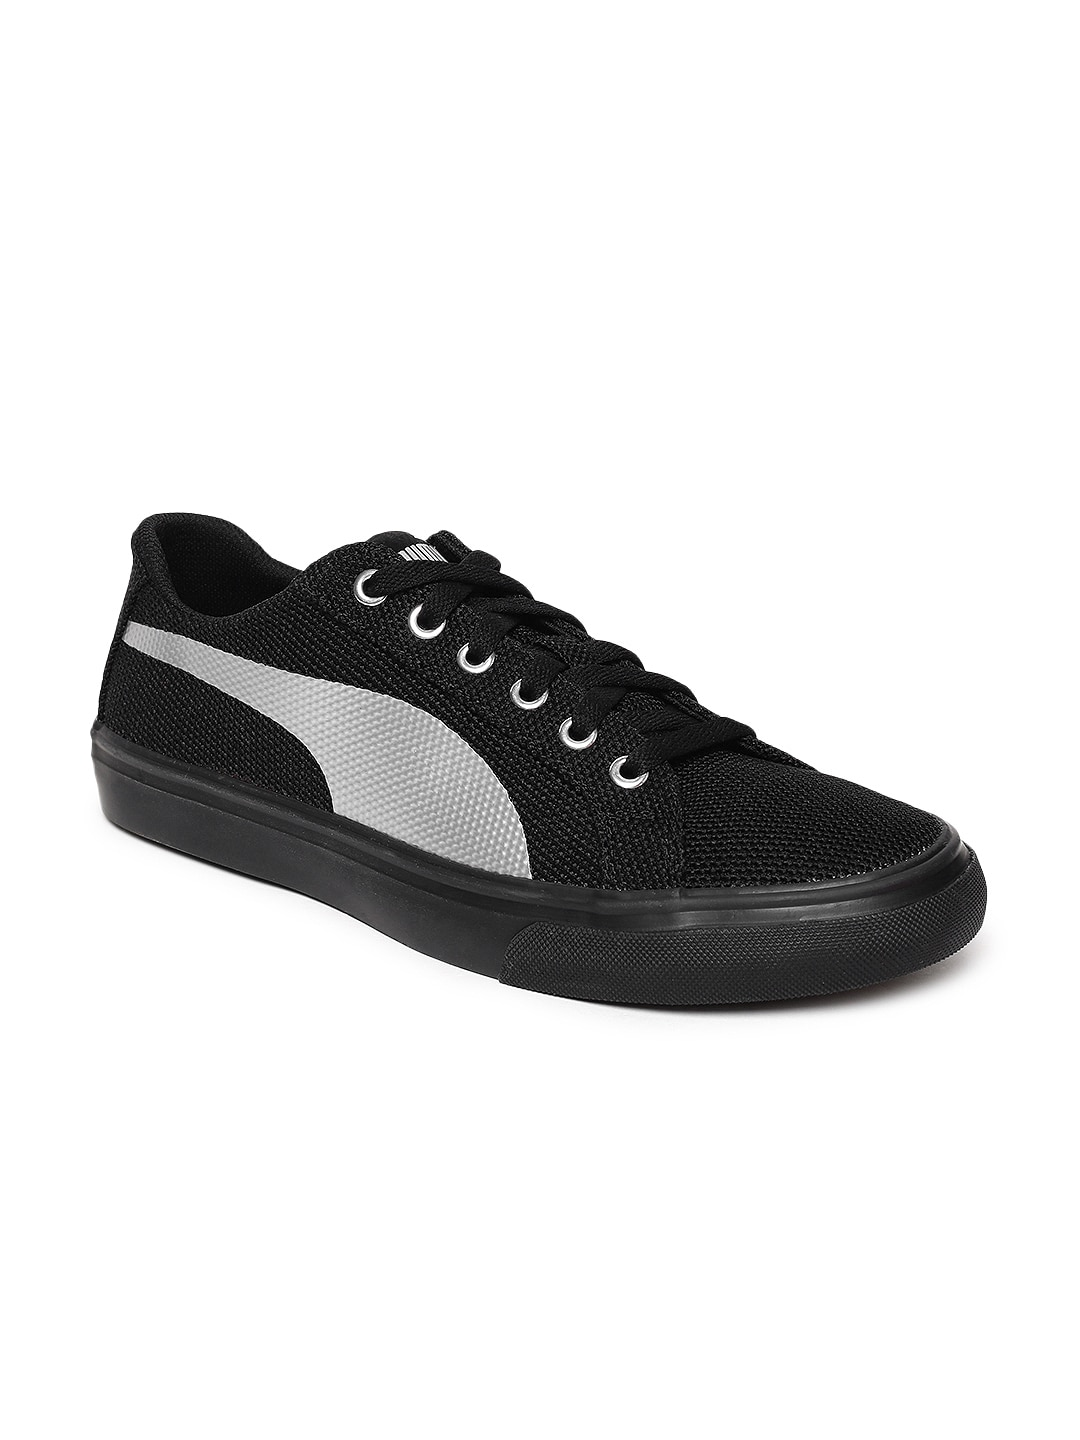 Puma Sneakers - Buy Puma Sneakers Online in India 0773b2271